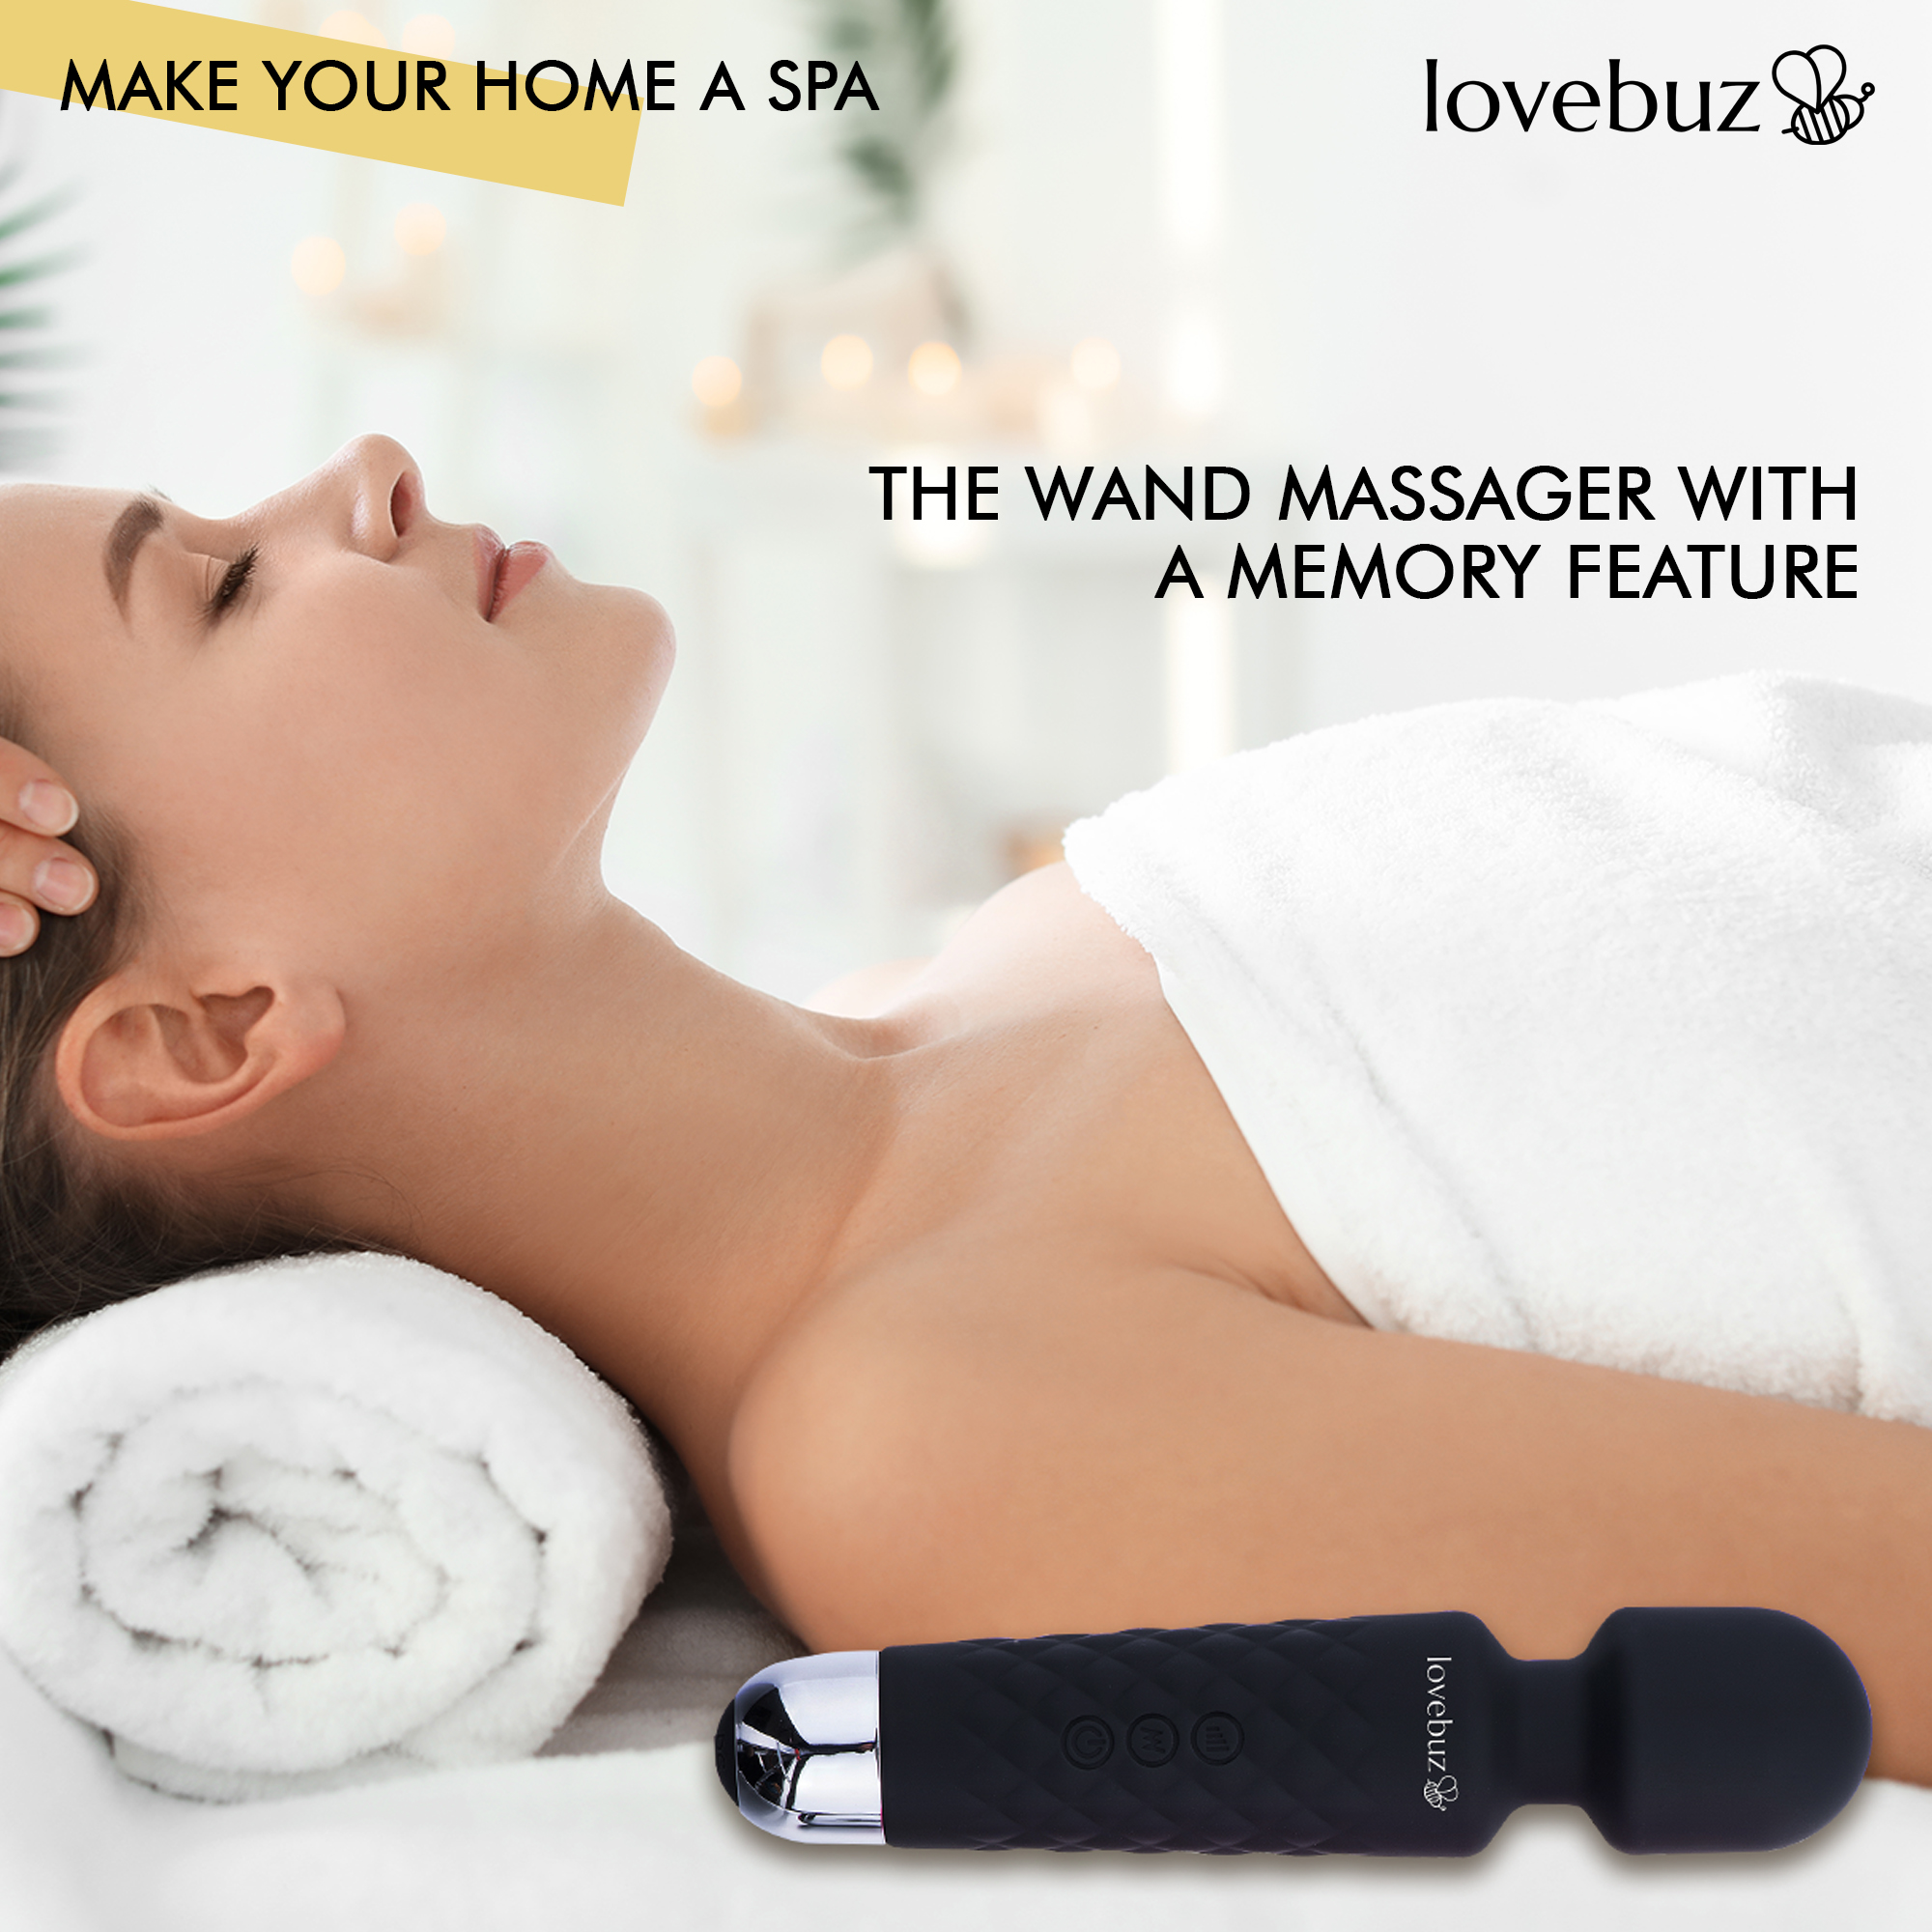 🐝 lovebuz 🐝 Personal Massager Wand with 20 Vibration Patterns...Make Your Home A Spa